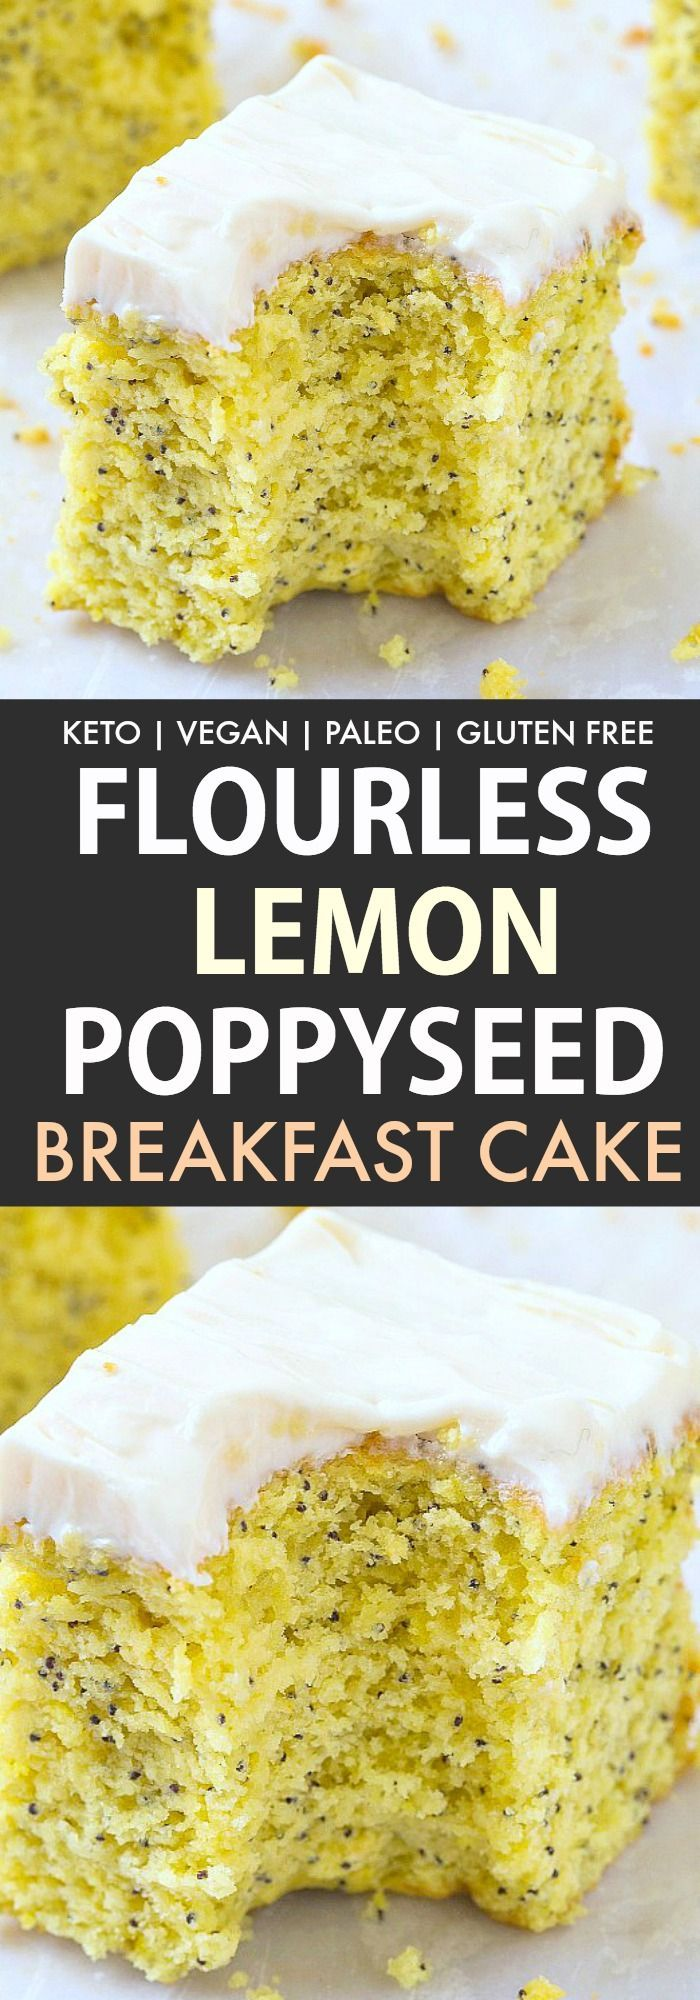 Flourless Keto Lemon Poppy Seed Breakfast Cake topped with a guilt-free thick frosting! An easy ketogenic and vegan breakfast recipe packed with protein- A fluffy and moist cake, yet tender on the outside, LOADED with lemon flavor!